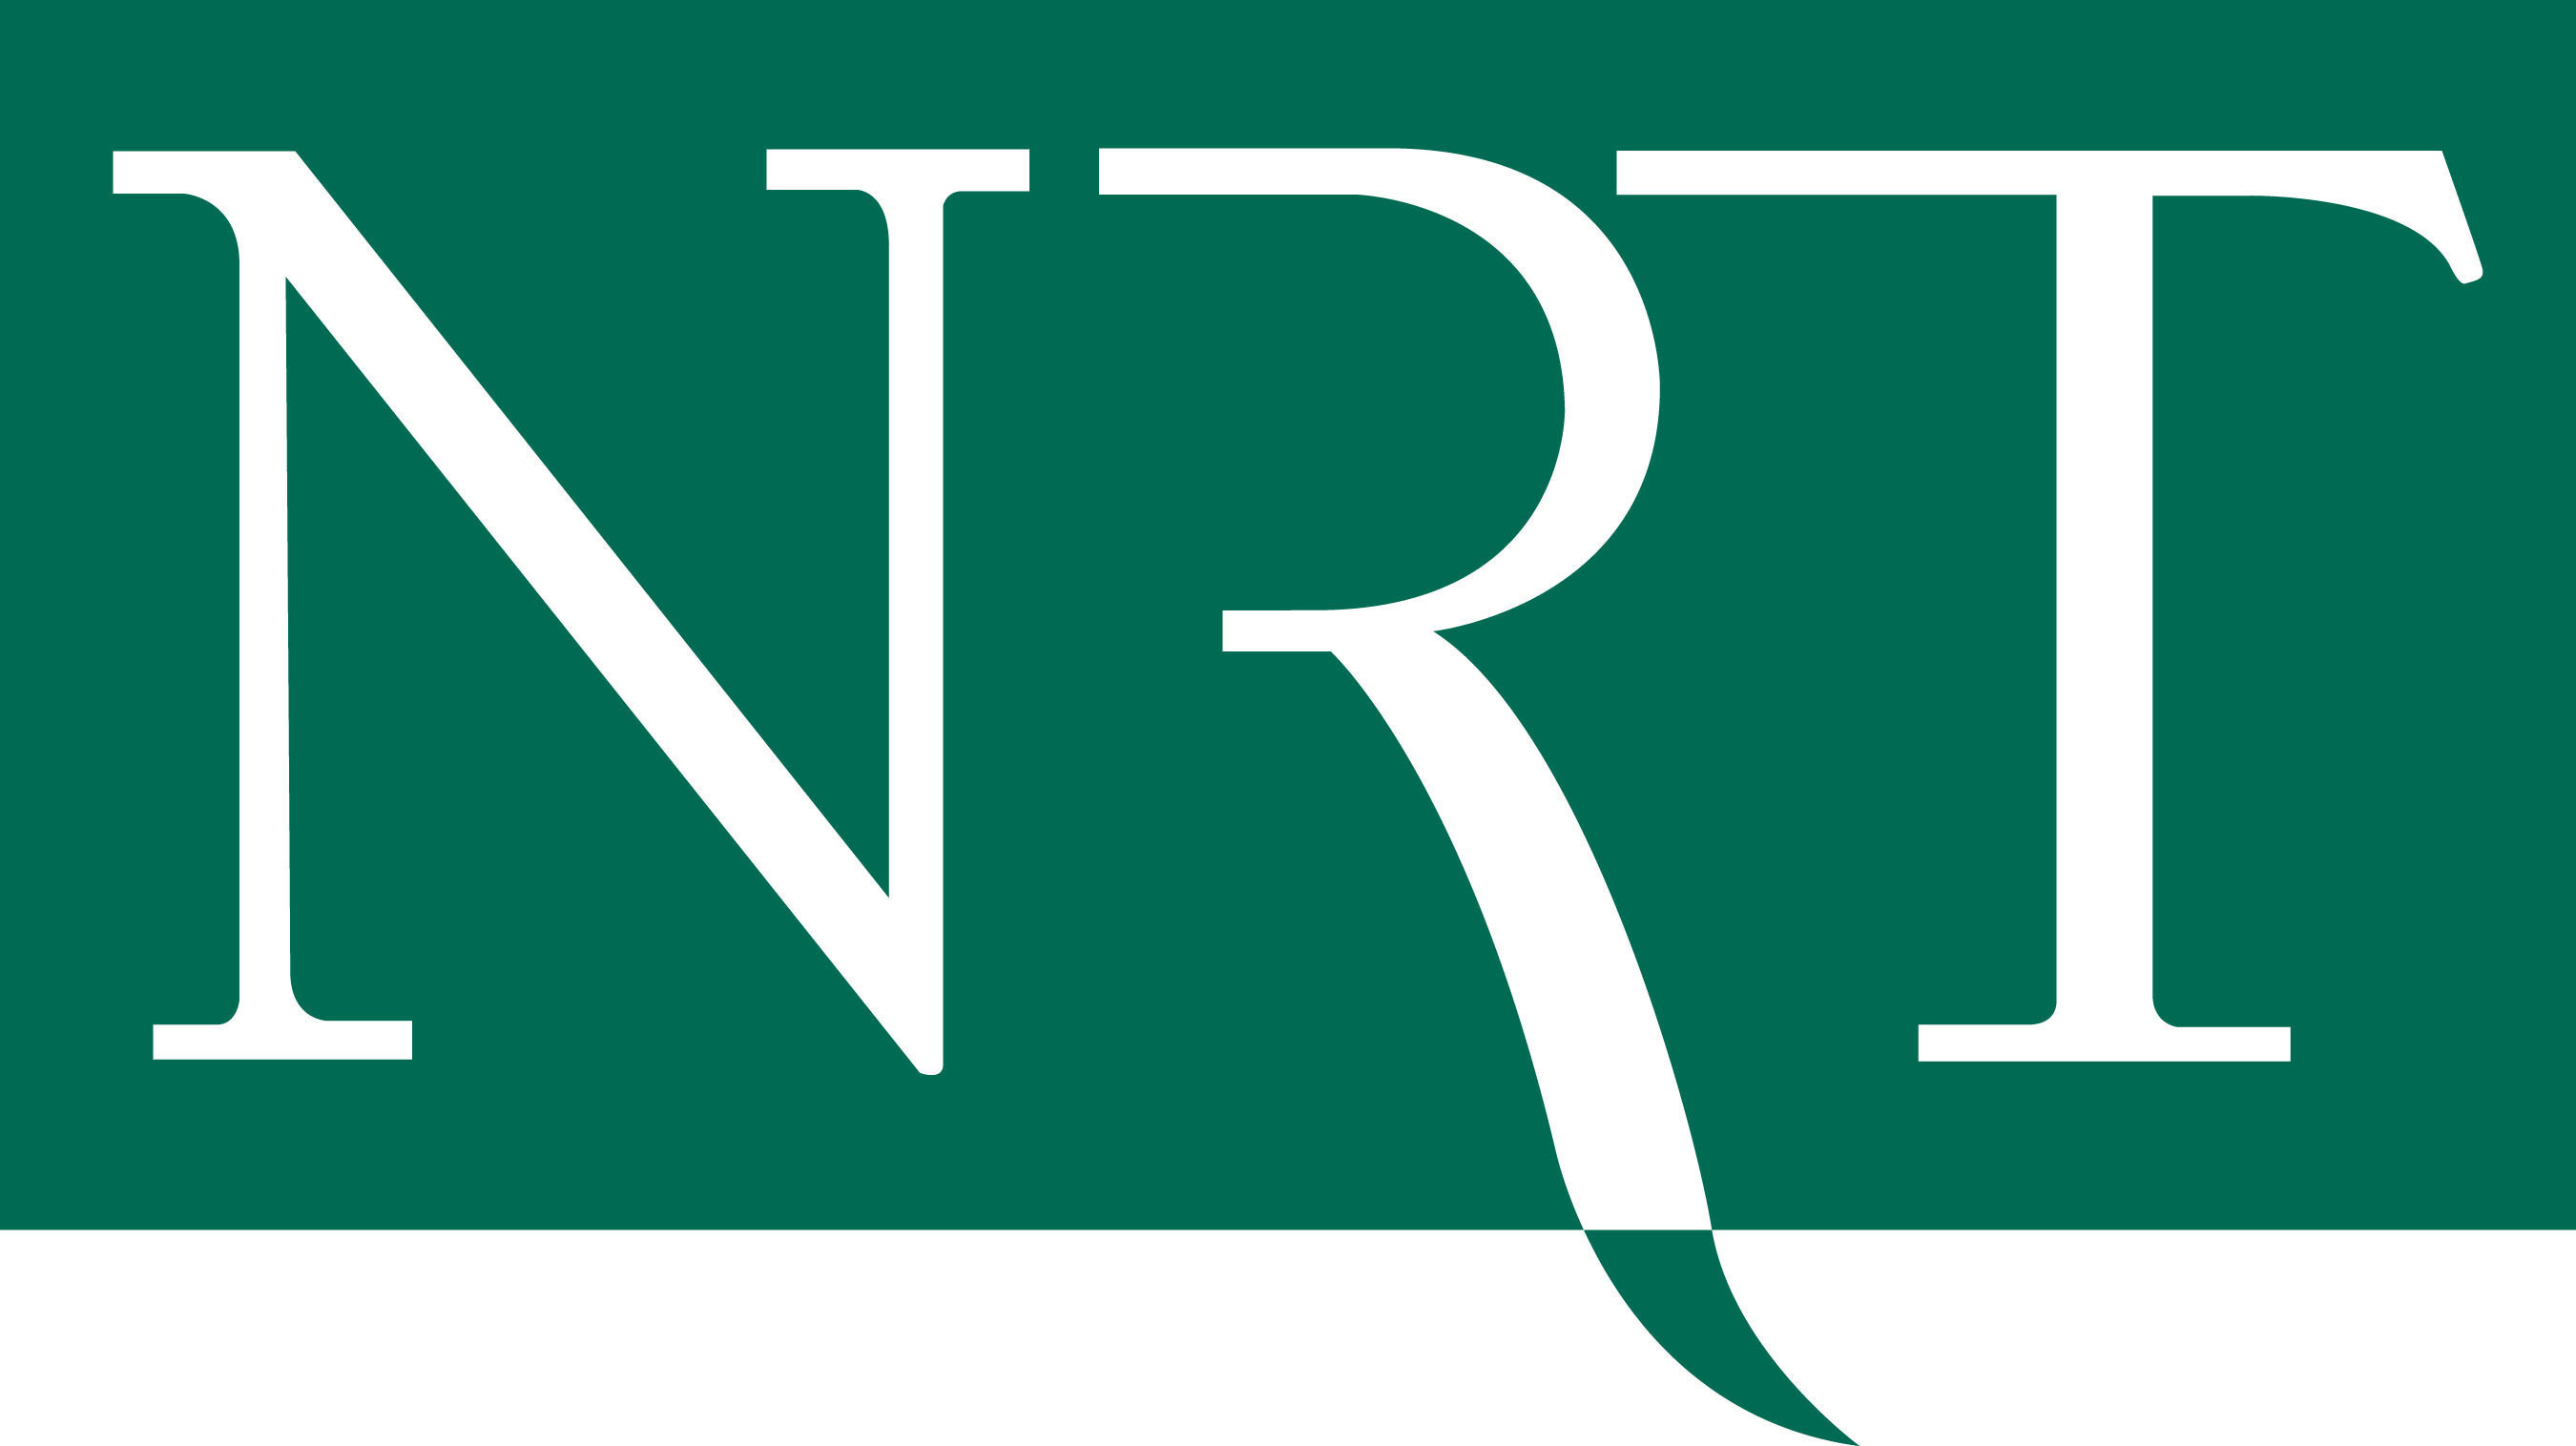 Realogy Subsidiary NRT Enters New Strategic Markets With Acquisition Of Regional Brokerage Firm